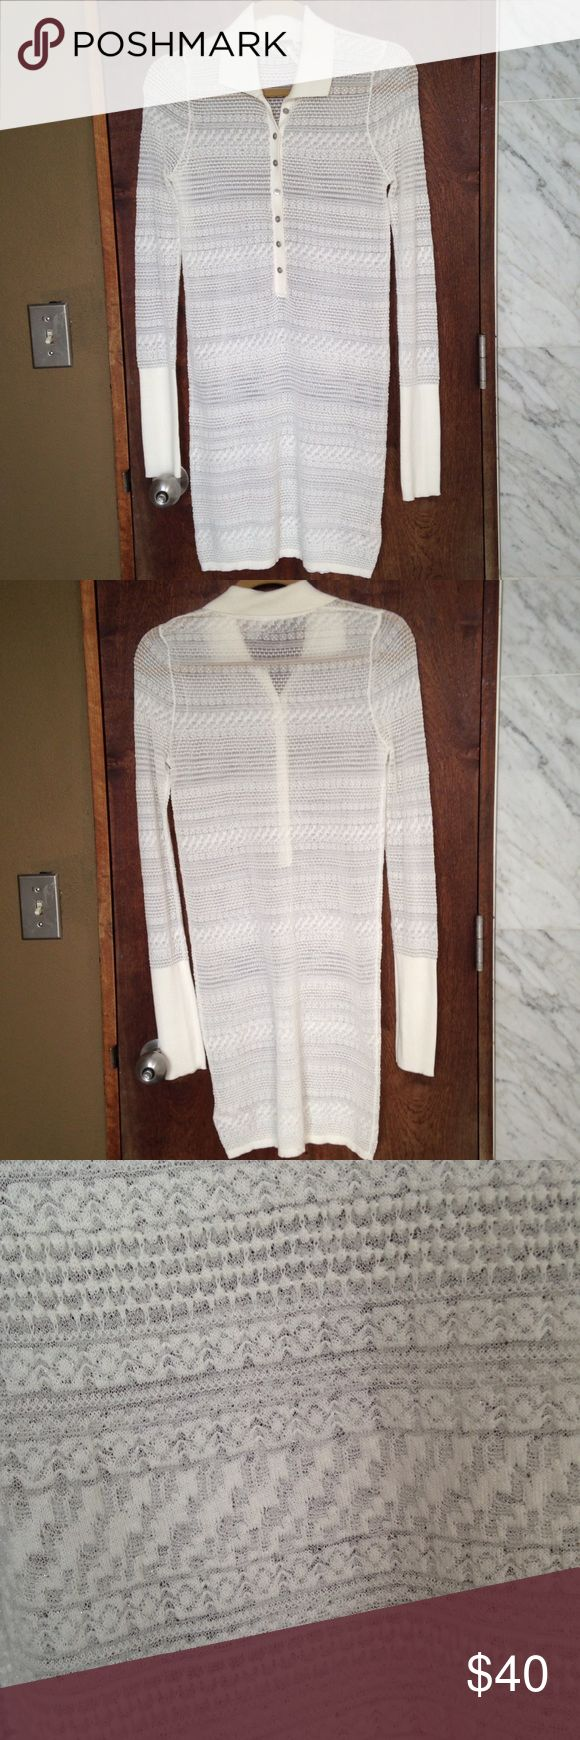 NWOT!! Free People White Knit Bodycon Beautiful white dress with silver sheen. Length:  36 in. Great condition Free People Dresses Long Sleeve